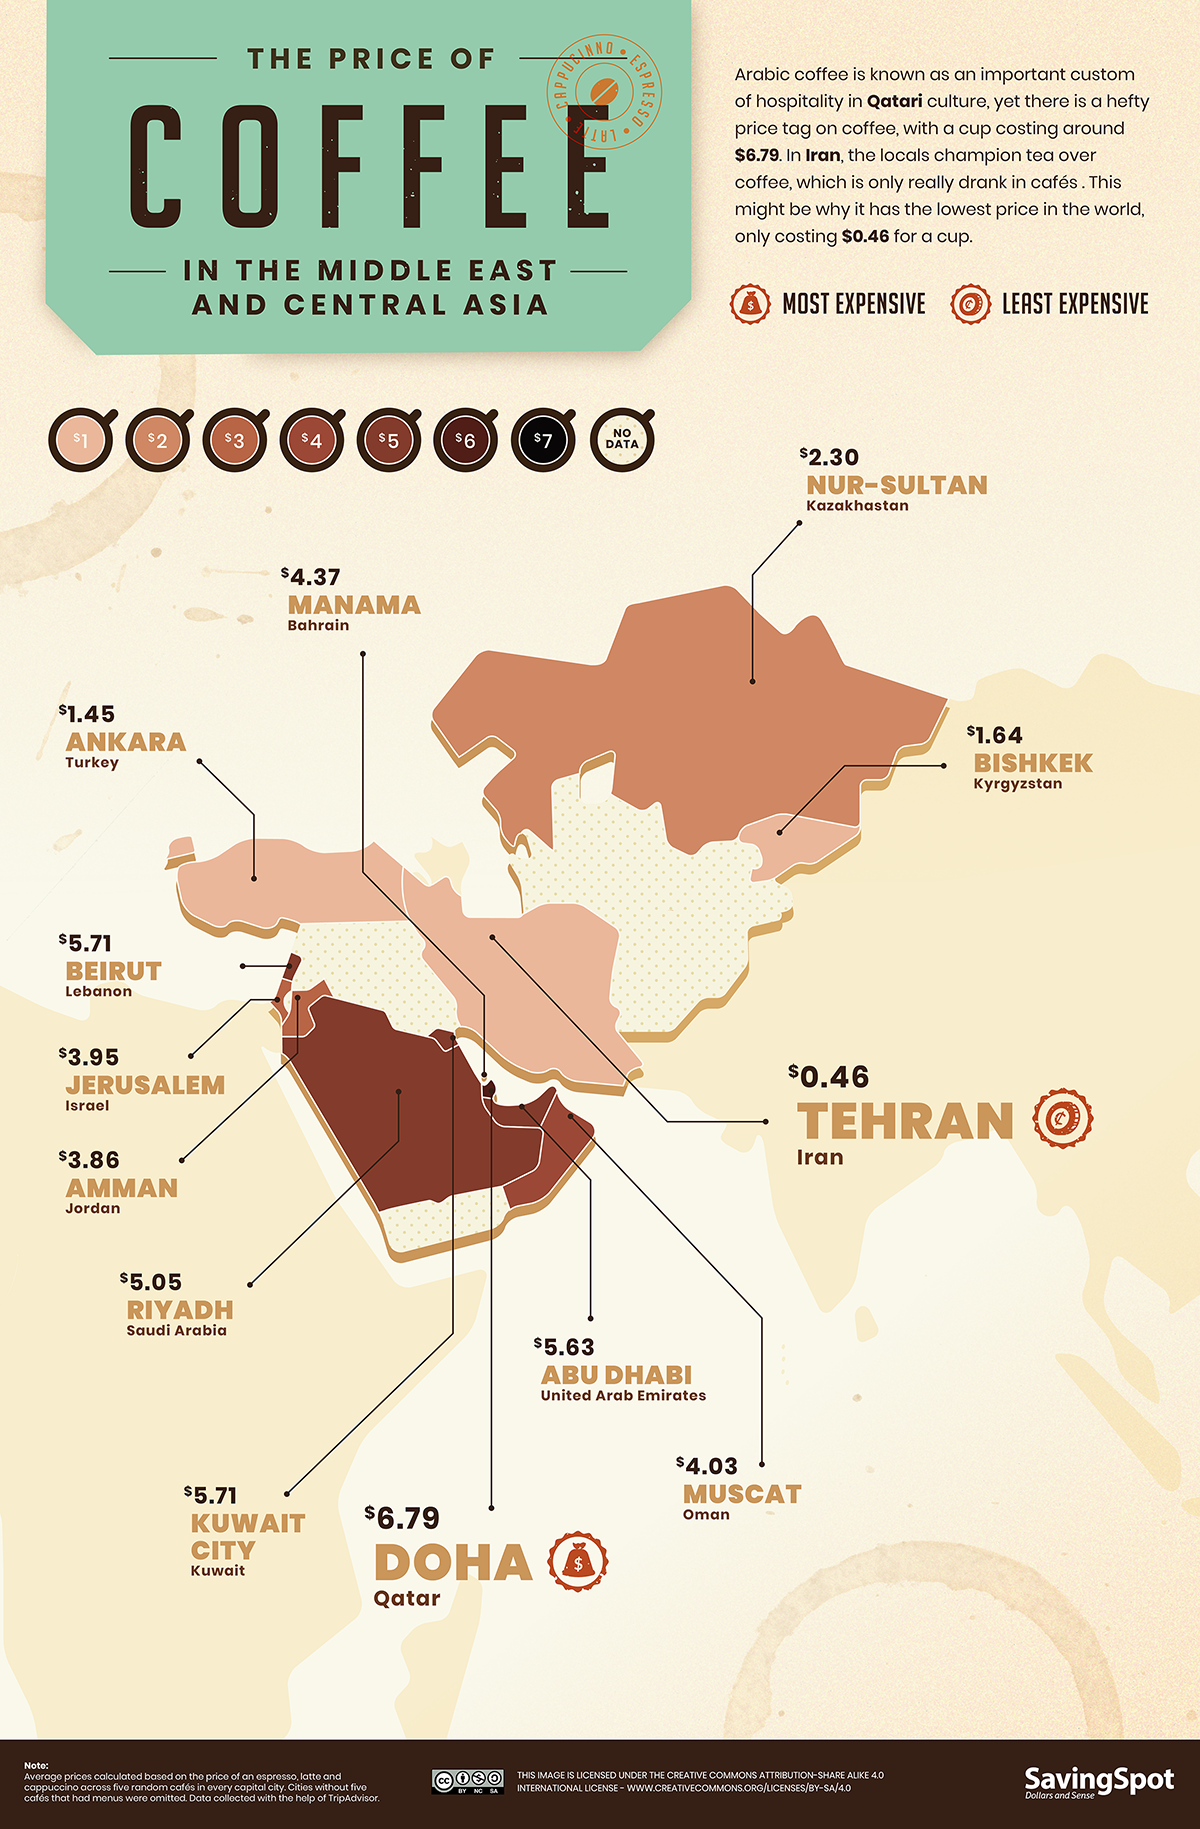 the price of coffee in Middle East & Central Asia